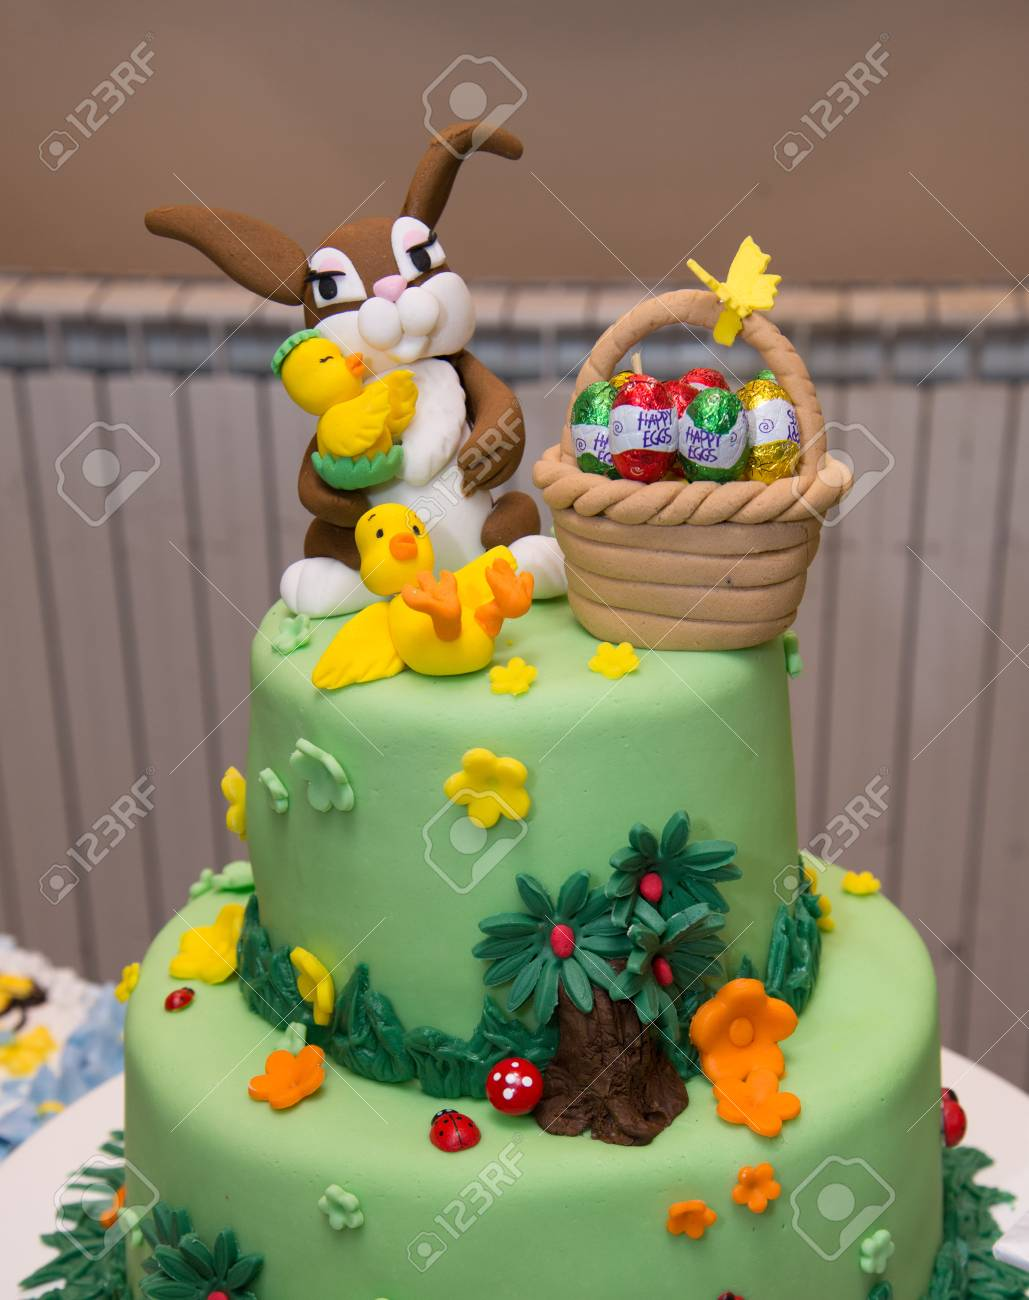 Baby Boy Birthday Cake With Bunny Decoration Easter Stock Photo